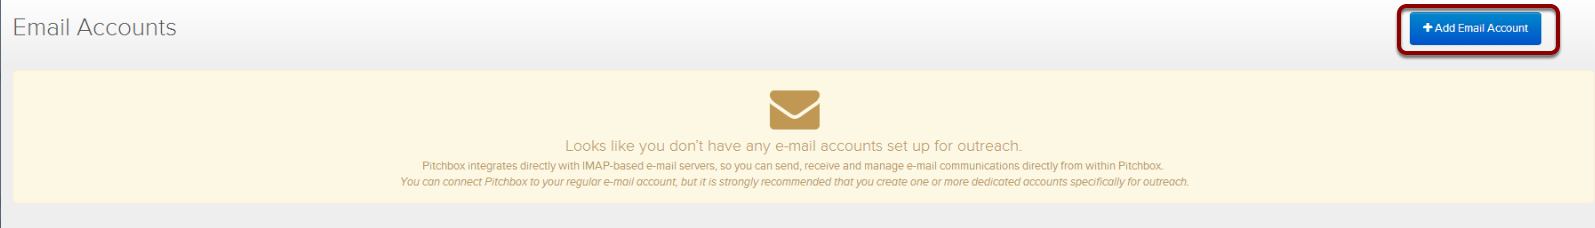 You can add a new mail address here. You can also add a couple of mail addresses which is especially useful if you want to outreach in behalf of one of your clients.